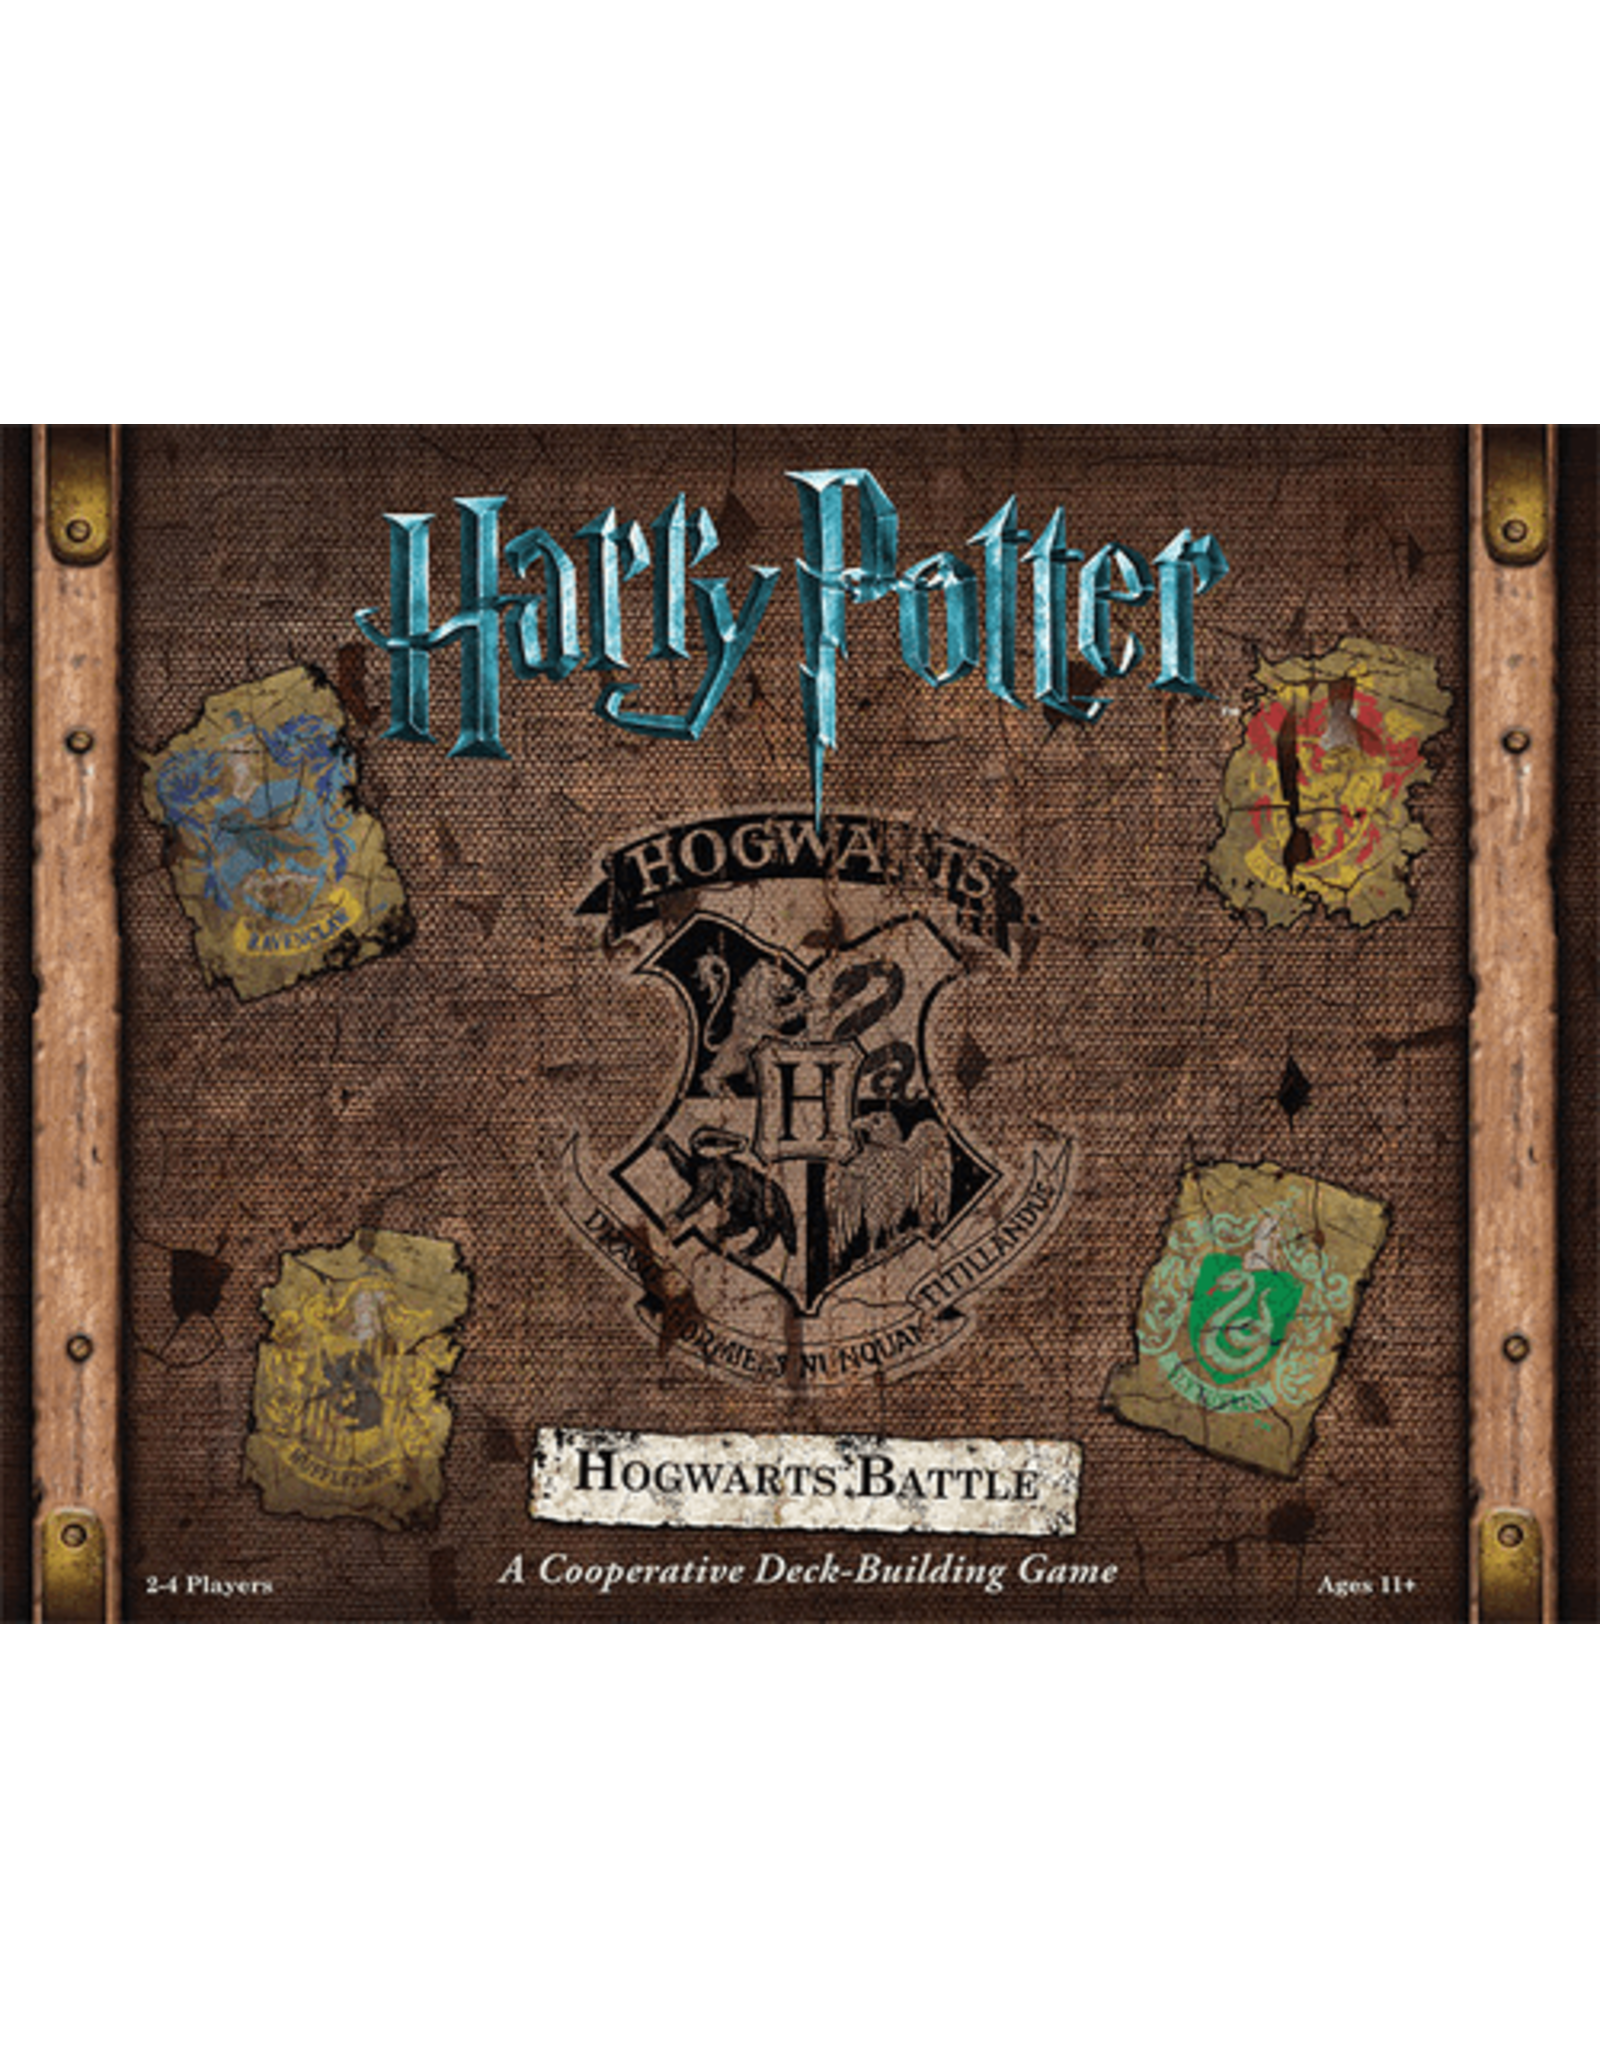 The Op Harry Potter Hogwarts Battle DBG